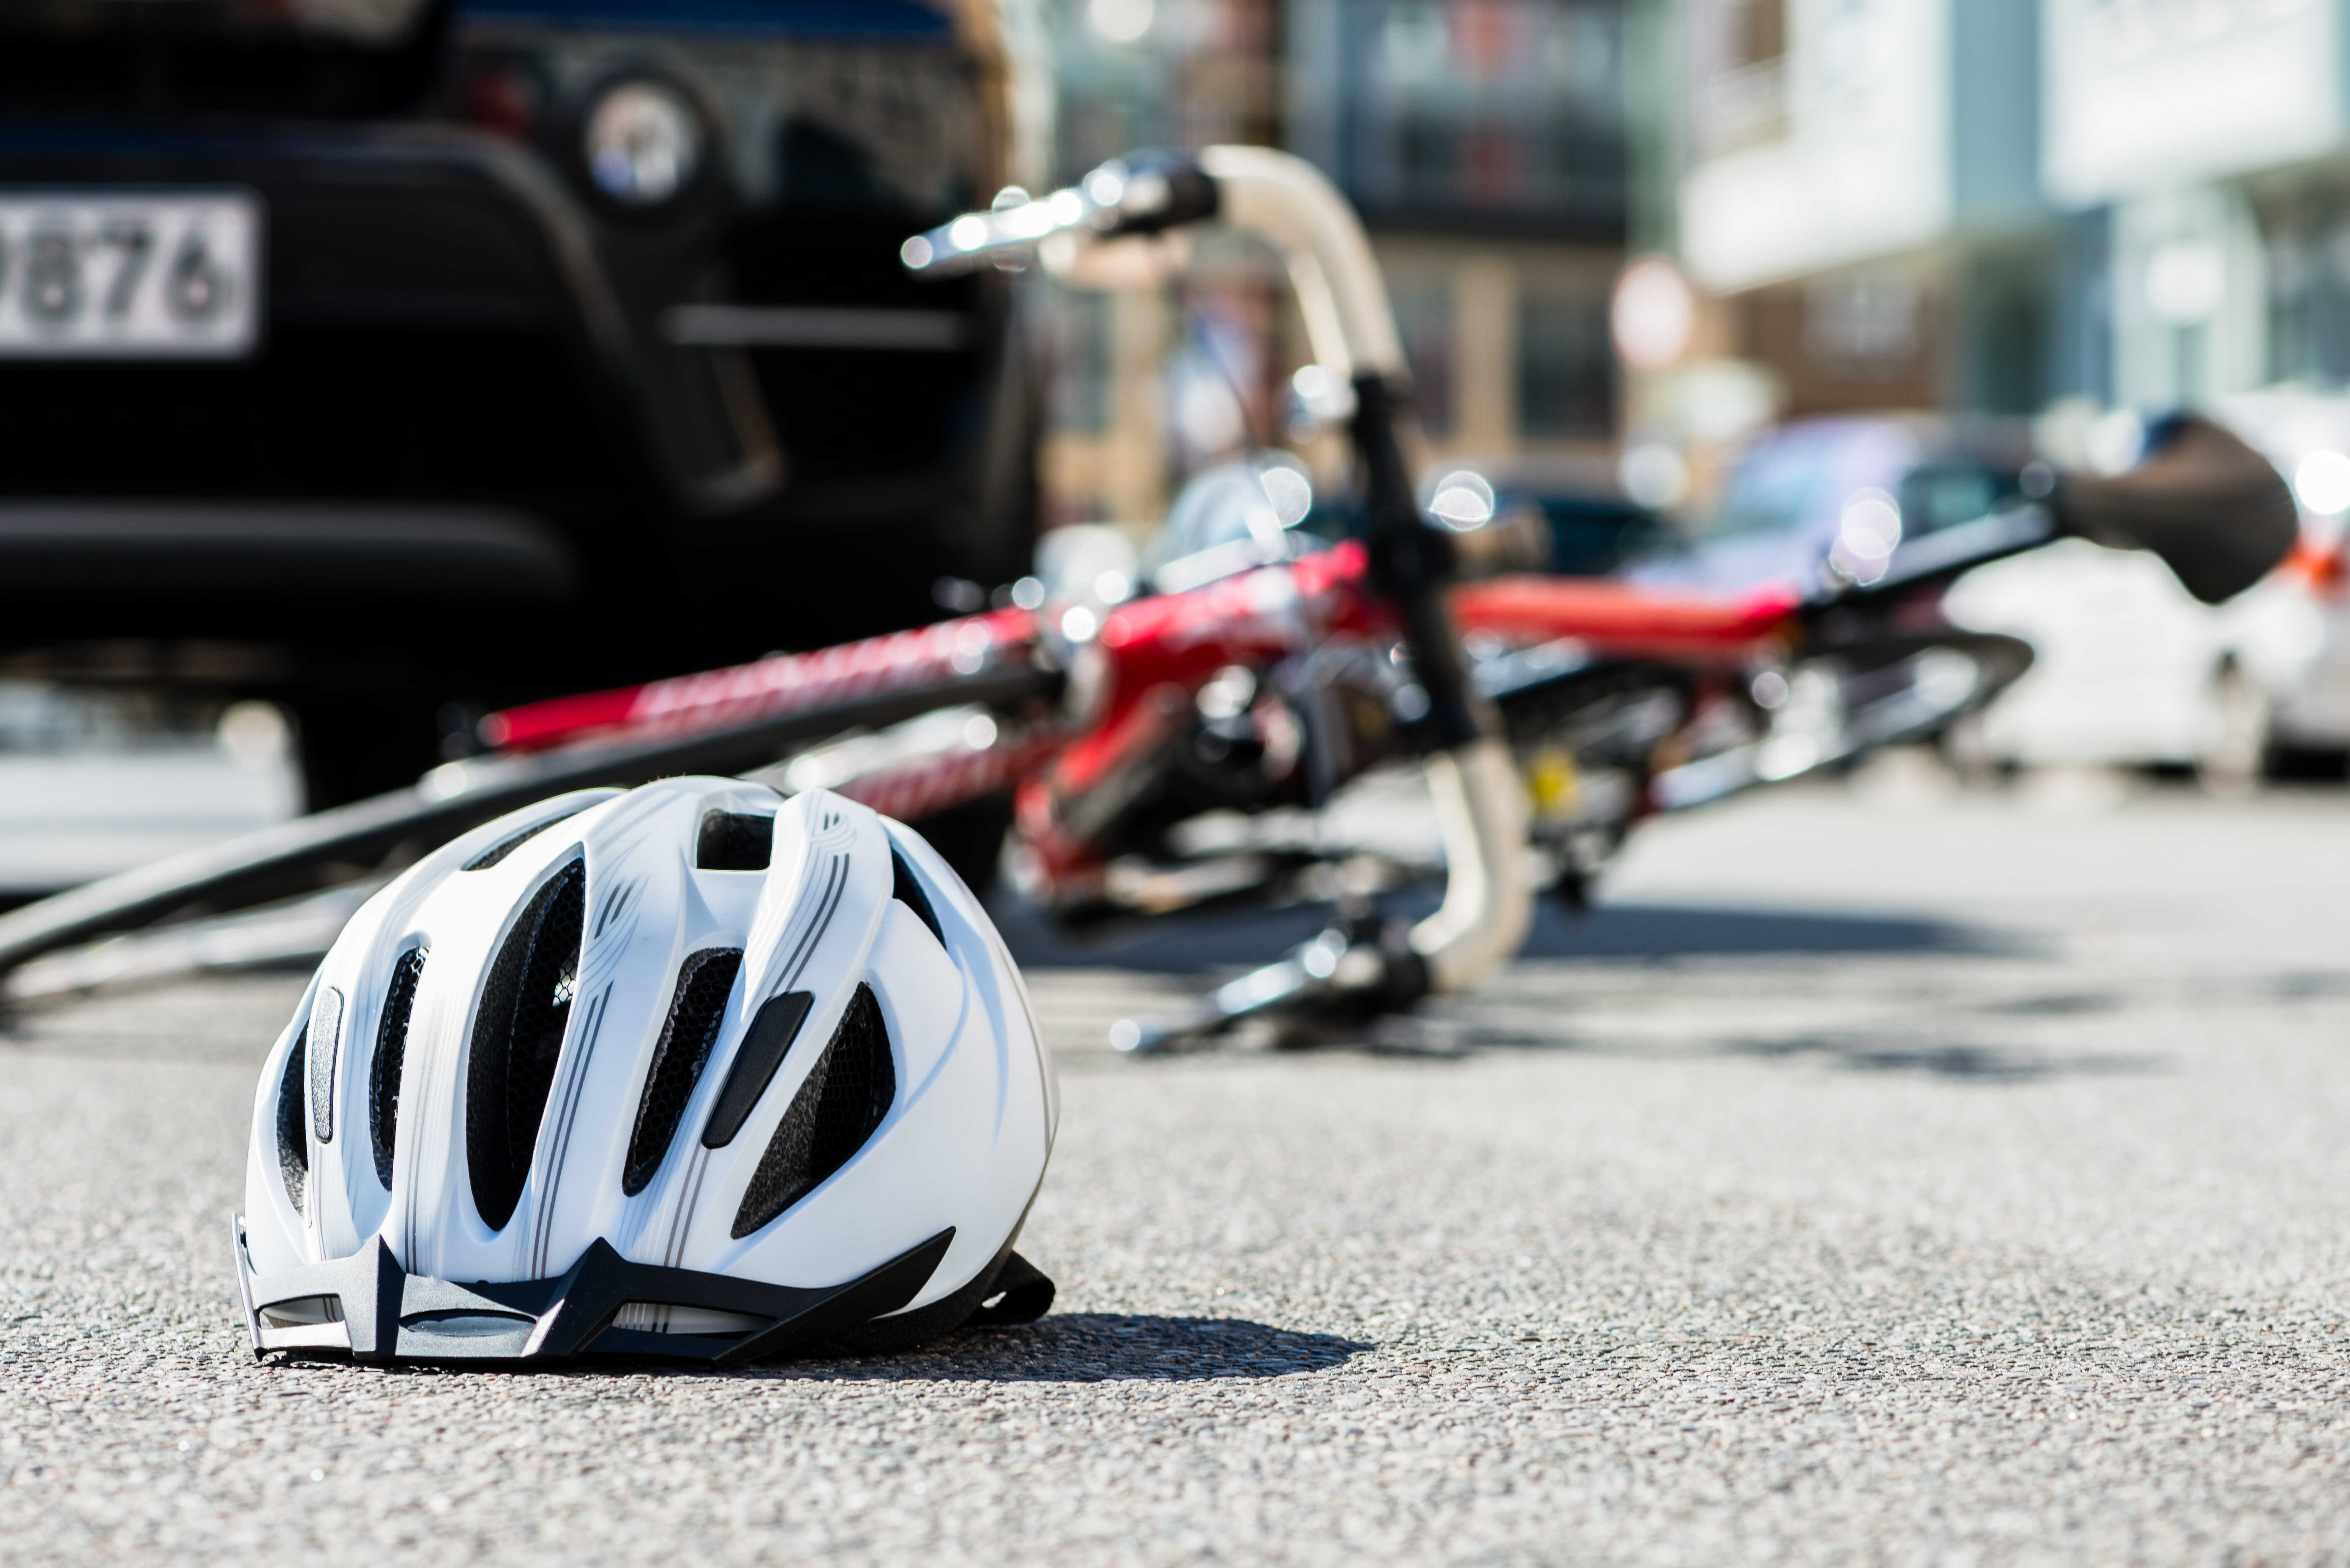 white bicycle helmet in front of overturned bicycle